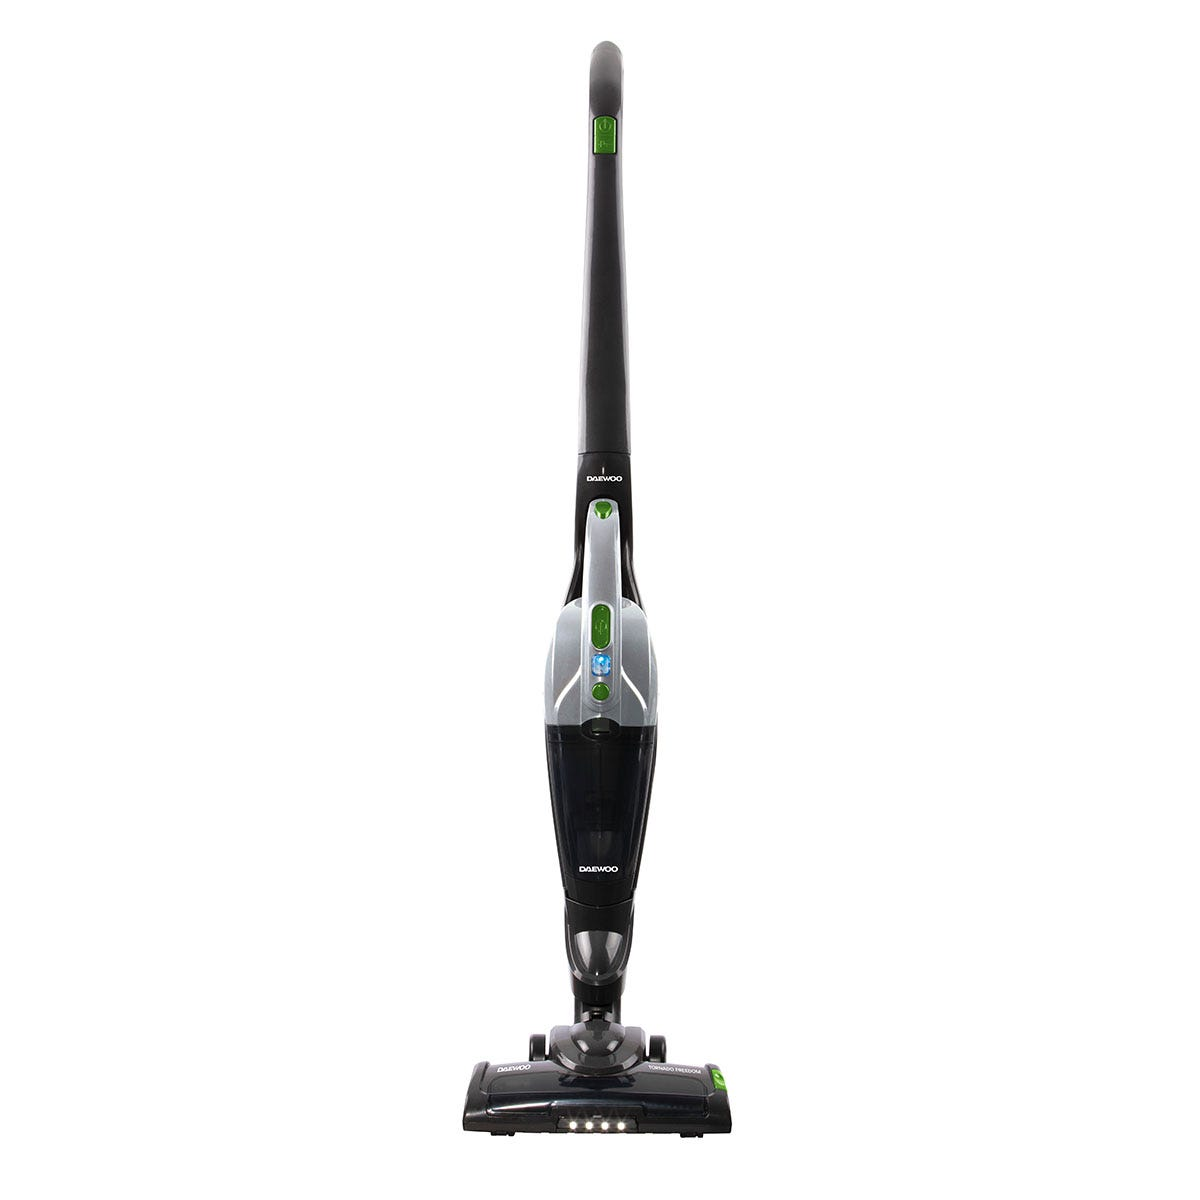 Daewoo FLR00044GE Tornado Freedom 22.2V Cordless 2-in-1 Upright and Handheld Vacuum Cleaner - Grey, Green, and Black